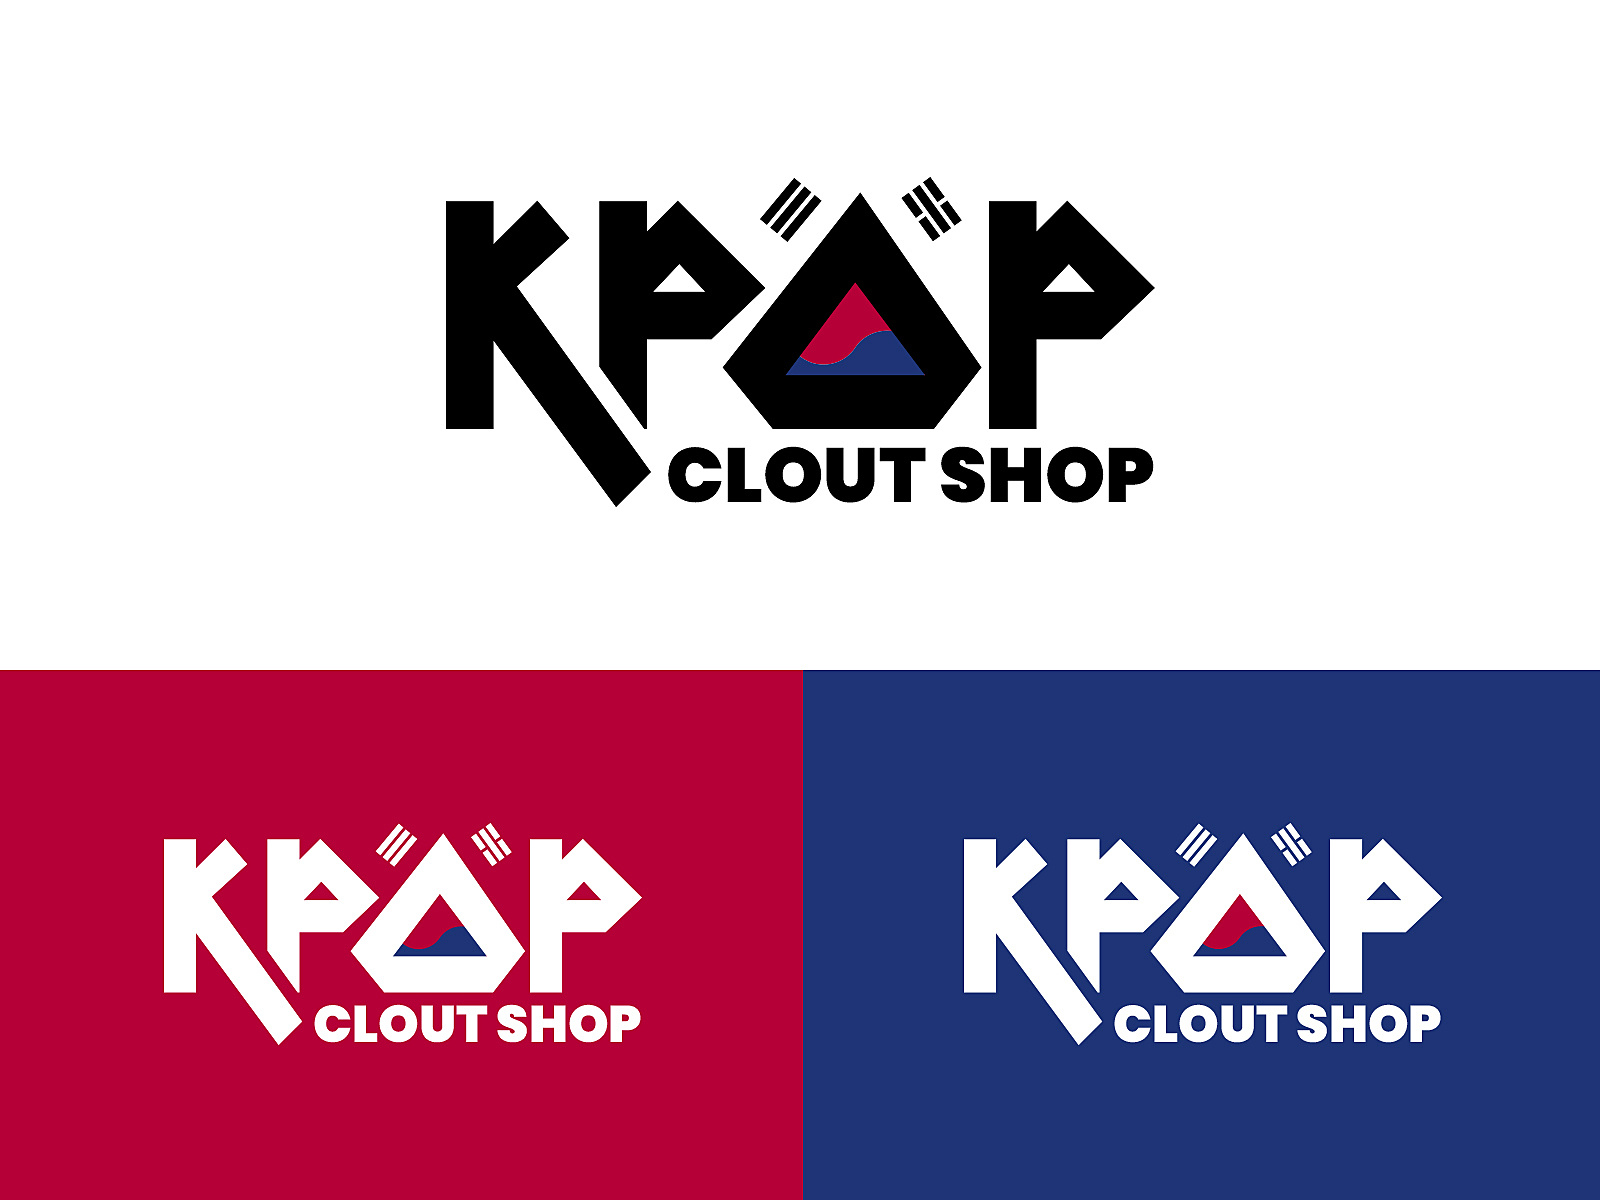 Kpop Clout Shop Logo Design by Deziner Guys on Dribbble.